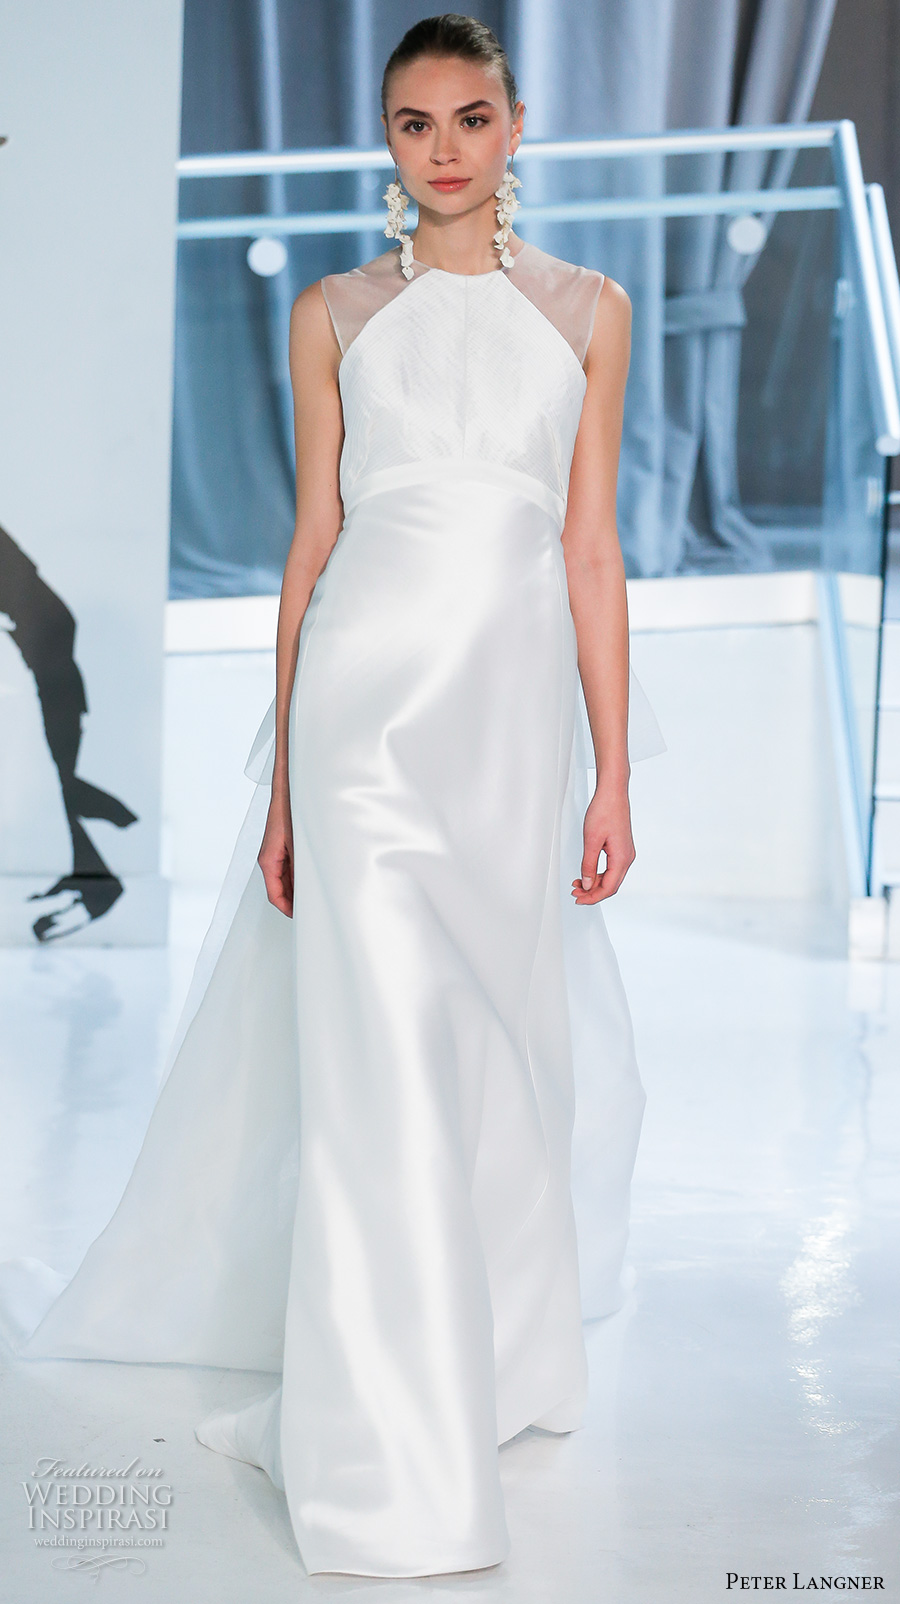 peter langner spring 2018 bridal sleeveless illusion jewel halter neck simple clean satin elegant sheath wedding dress sheer back chapel train (04) mv